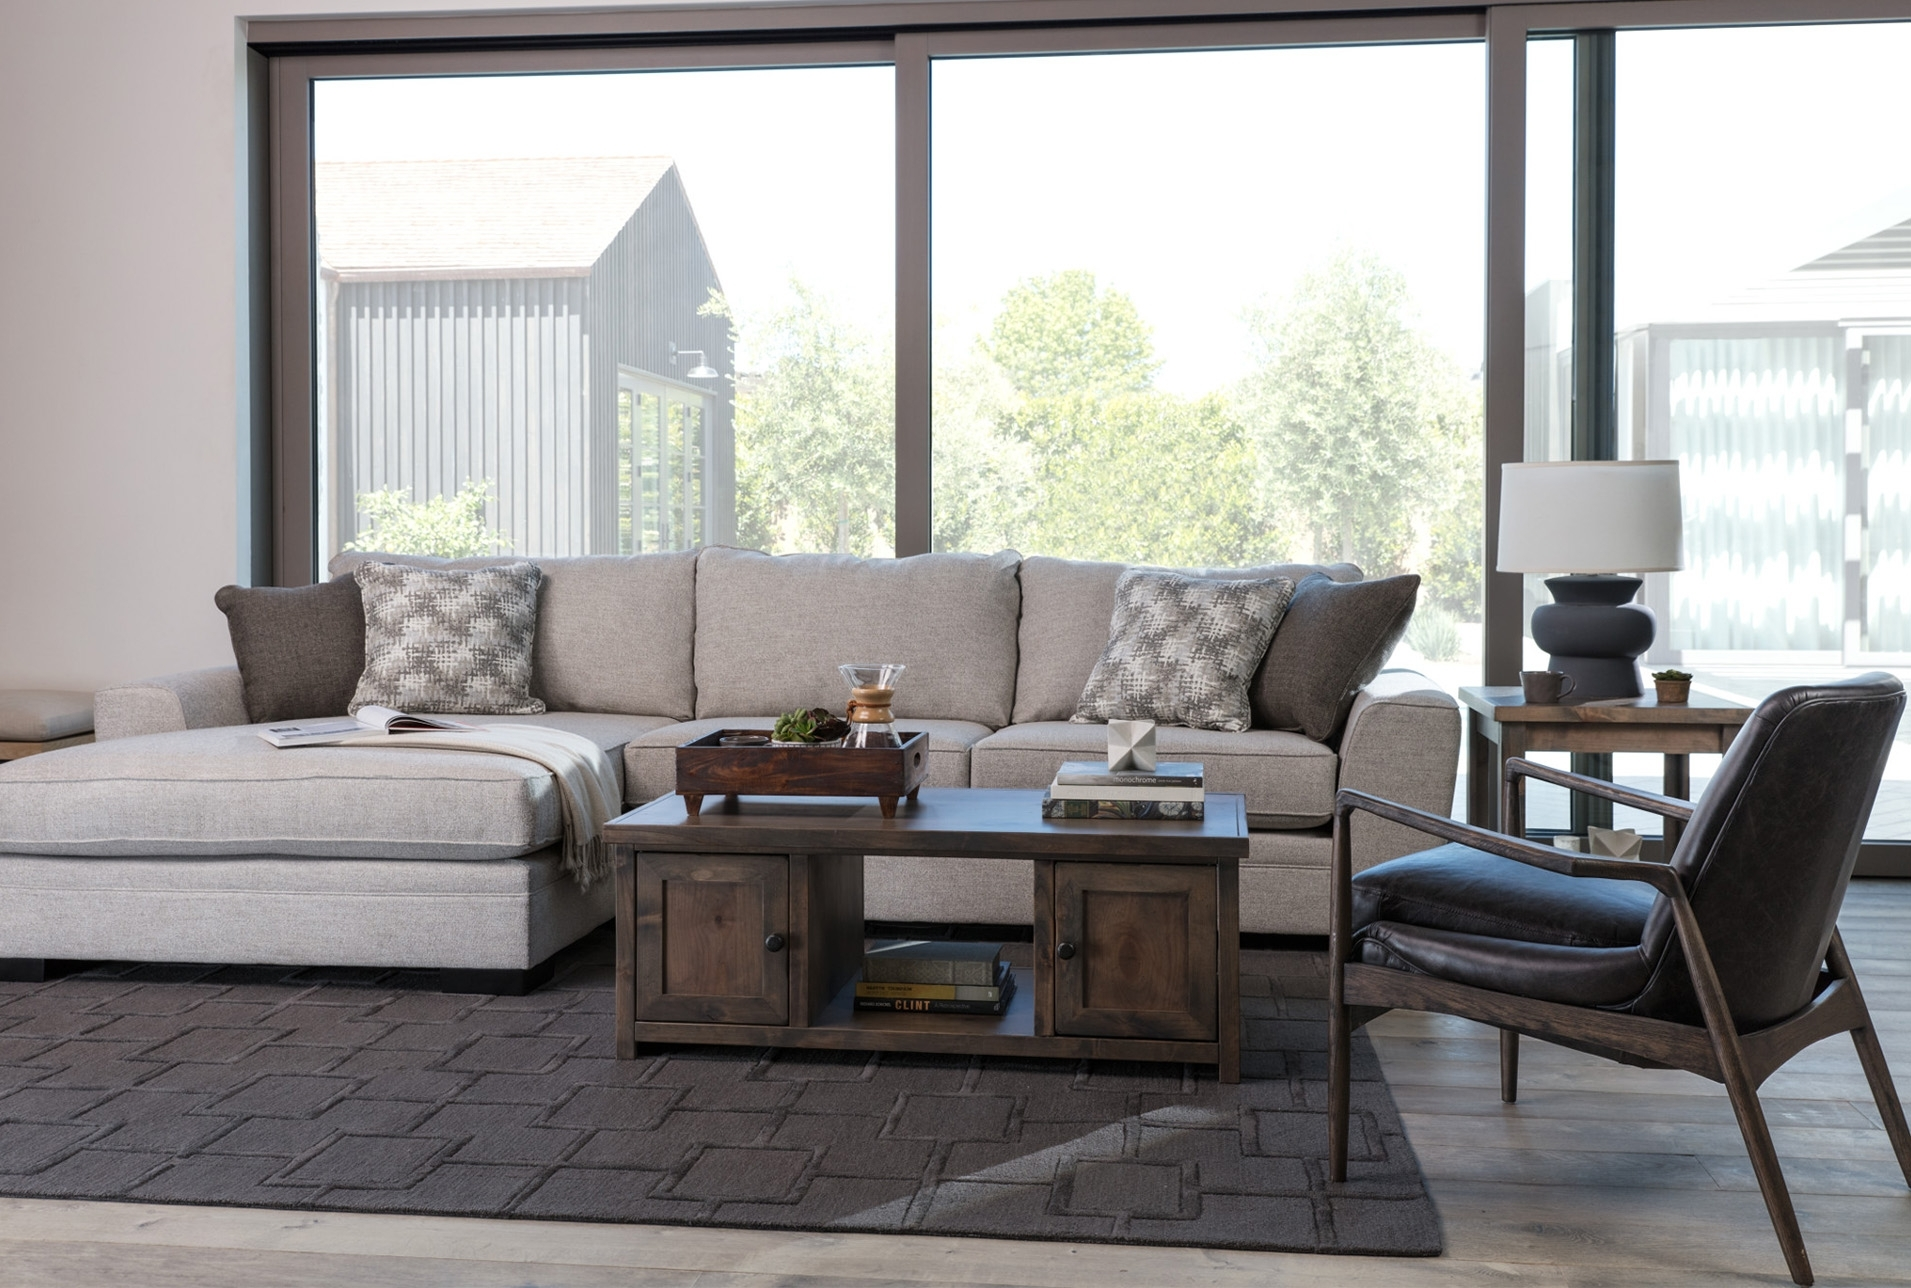 Delano 2 Piece Sectional W/raf Oversized Chaise | Products Throughout Delano 2 Piece Sectionals With Raf Oversized Chaise (View 4 of 25)